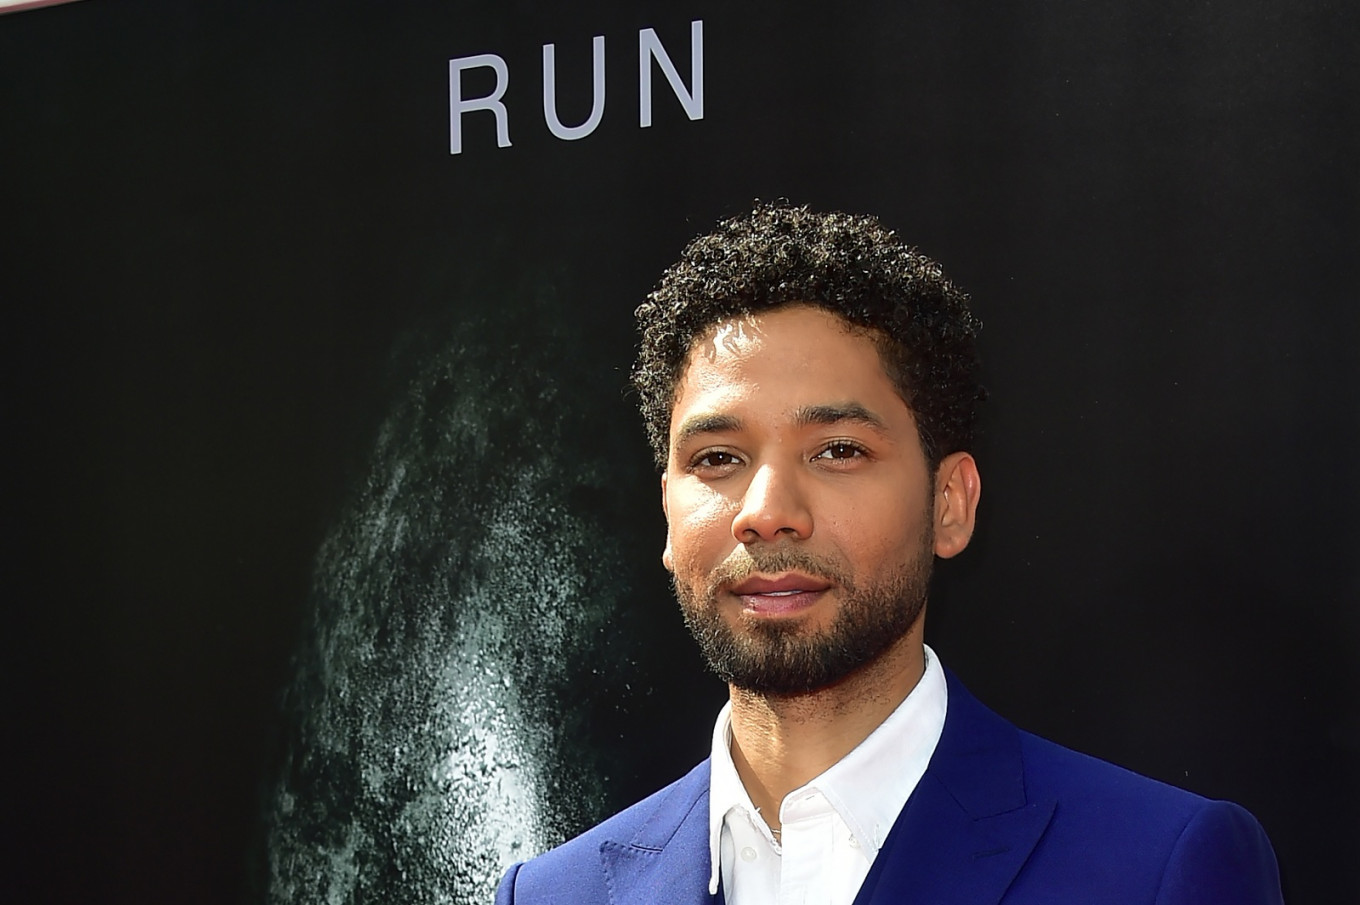 Jesse Jackson: Outrage Over Jussie Smollett 'Misplaced and Out of Control'